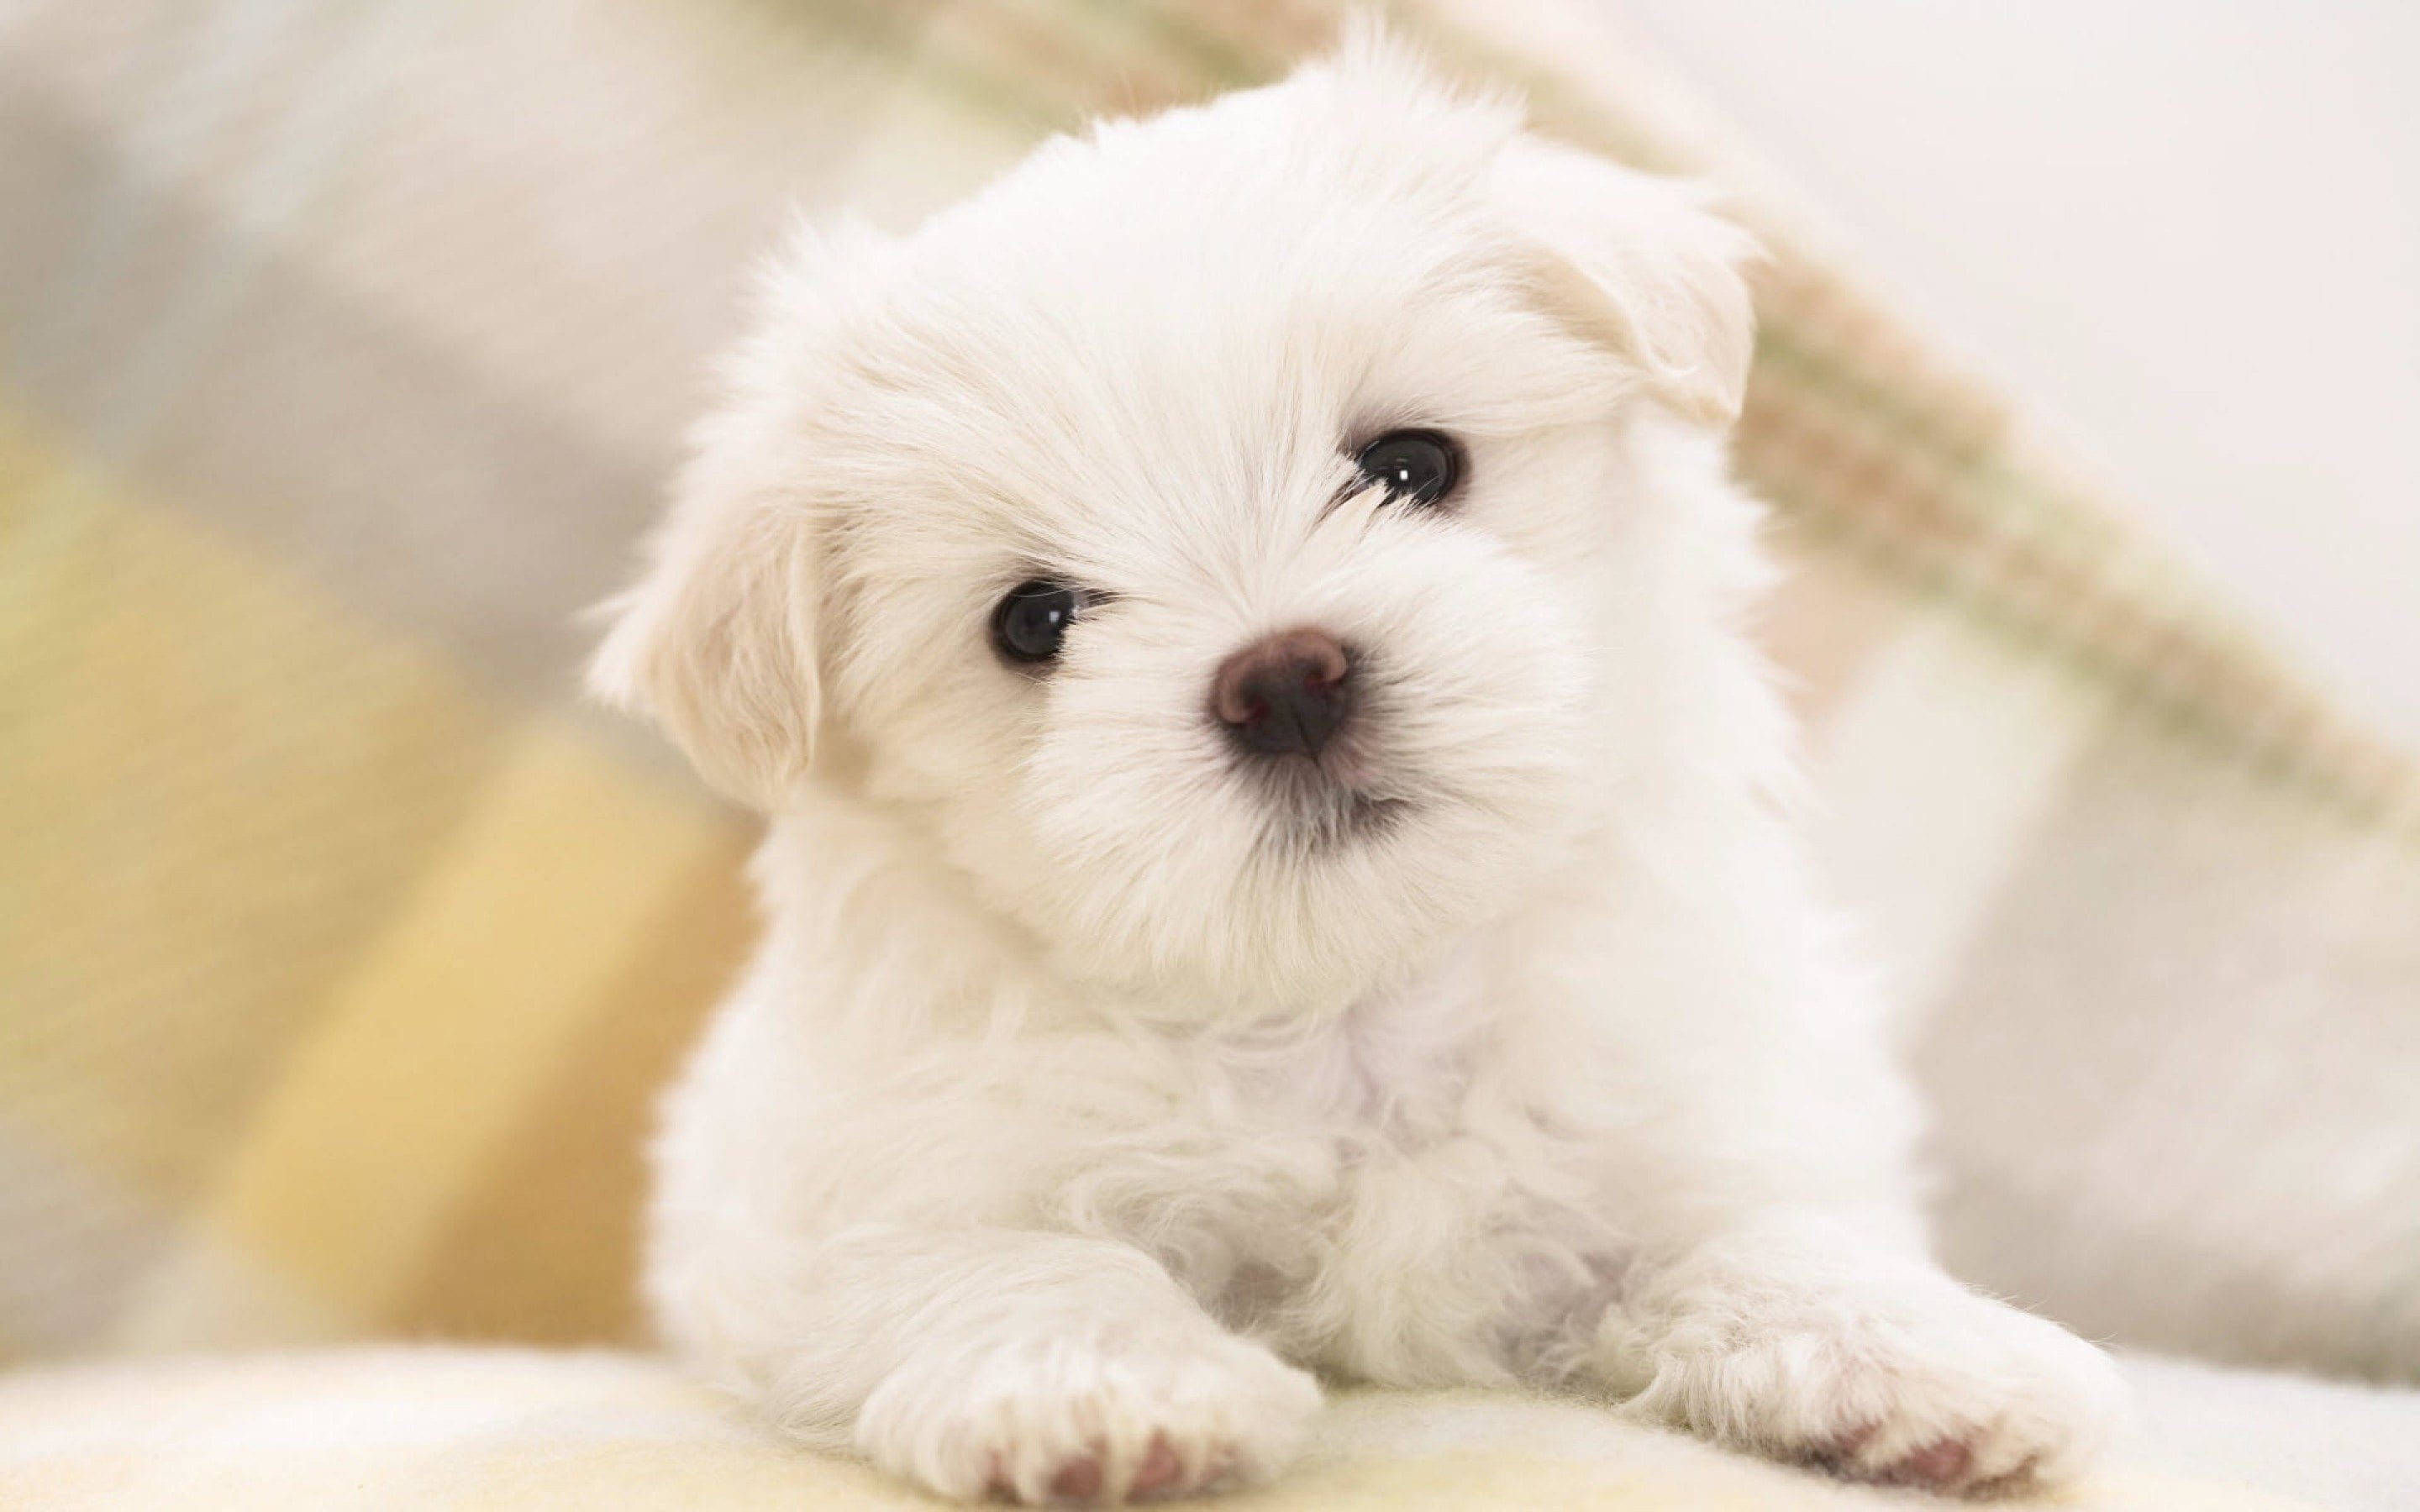 free-cute-puppy-images-dowload